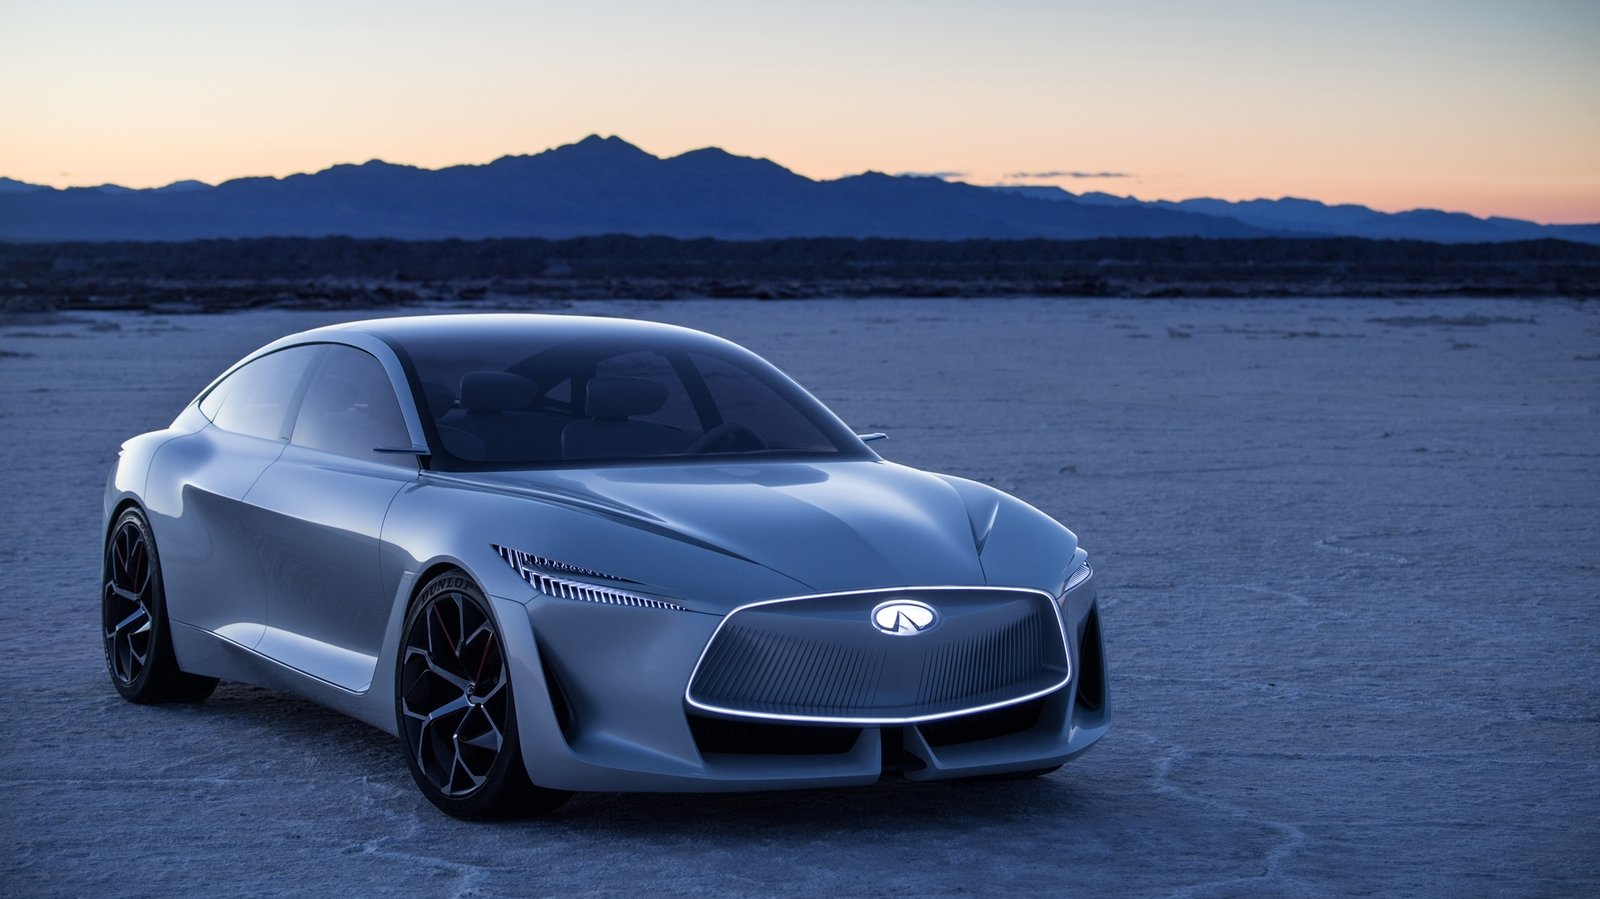 Infiniti Is Going Electric From 2021; All New Cars Will Be ...